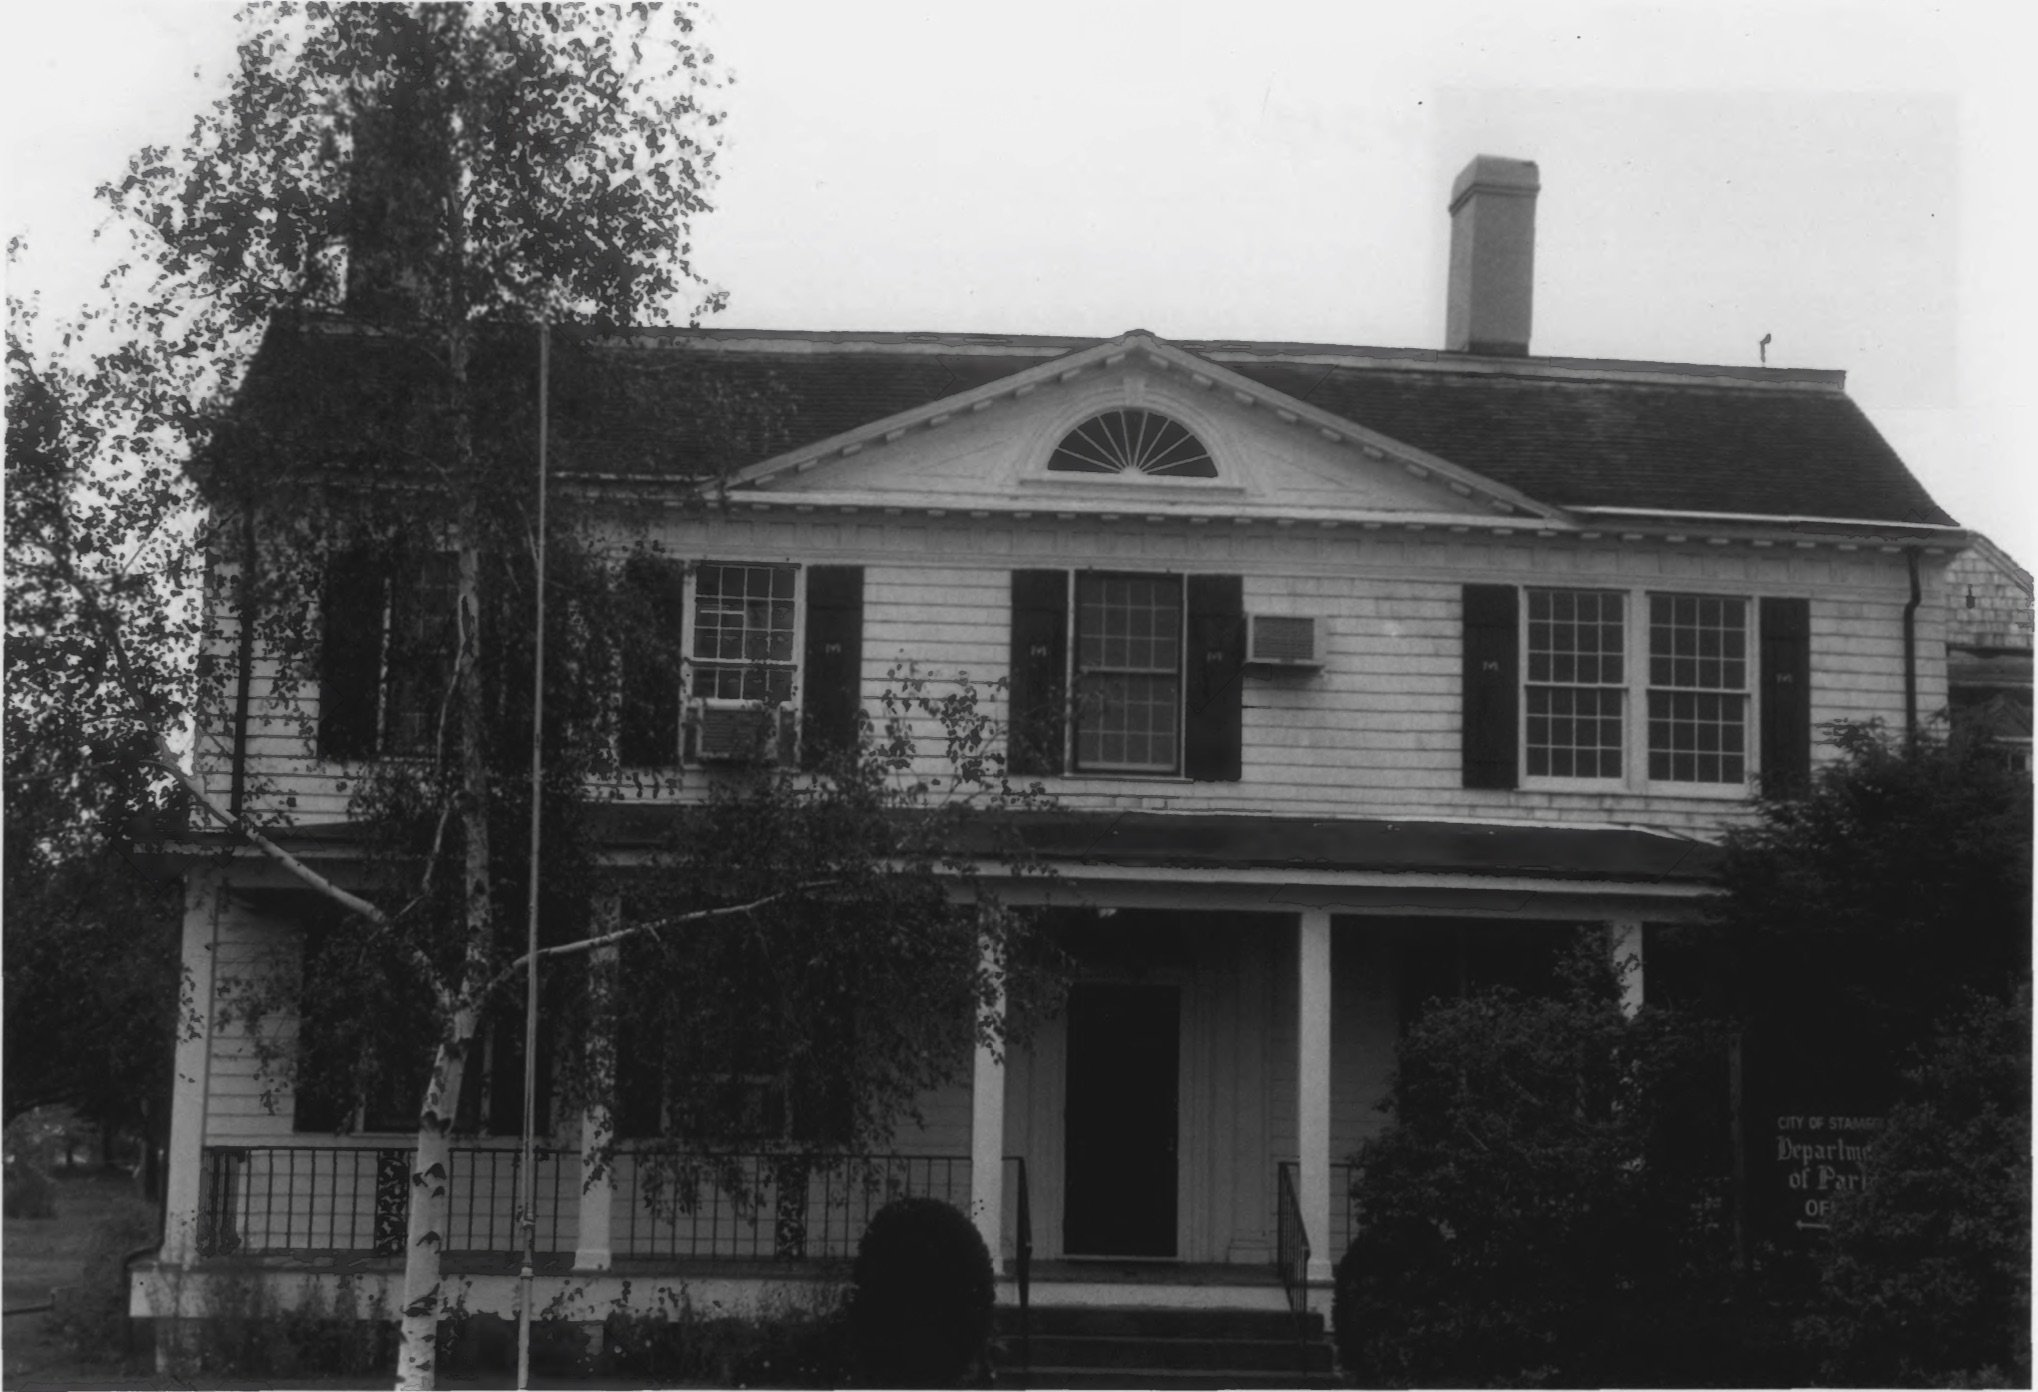 Wide Shot of the Cove Island House in 1979 by D. Ransom, Part of the NPS NRHP Photographic Collection on the Cove House